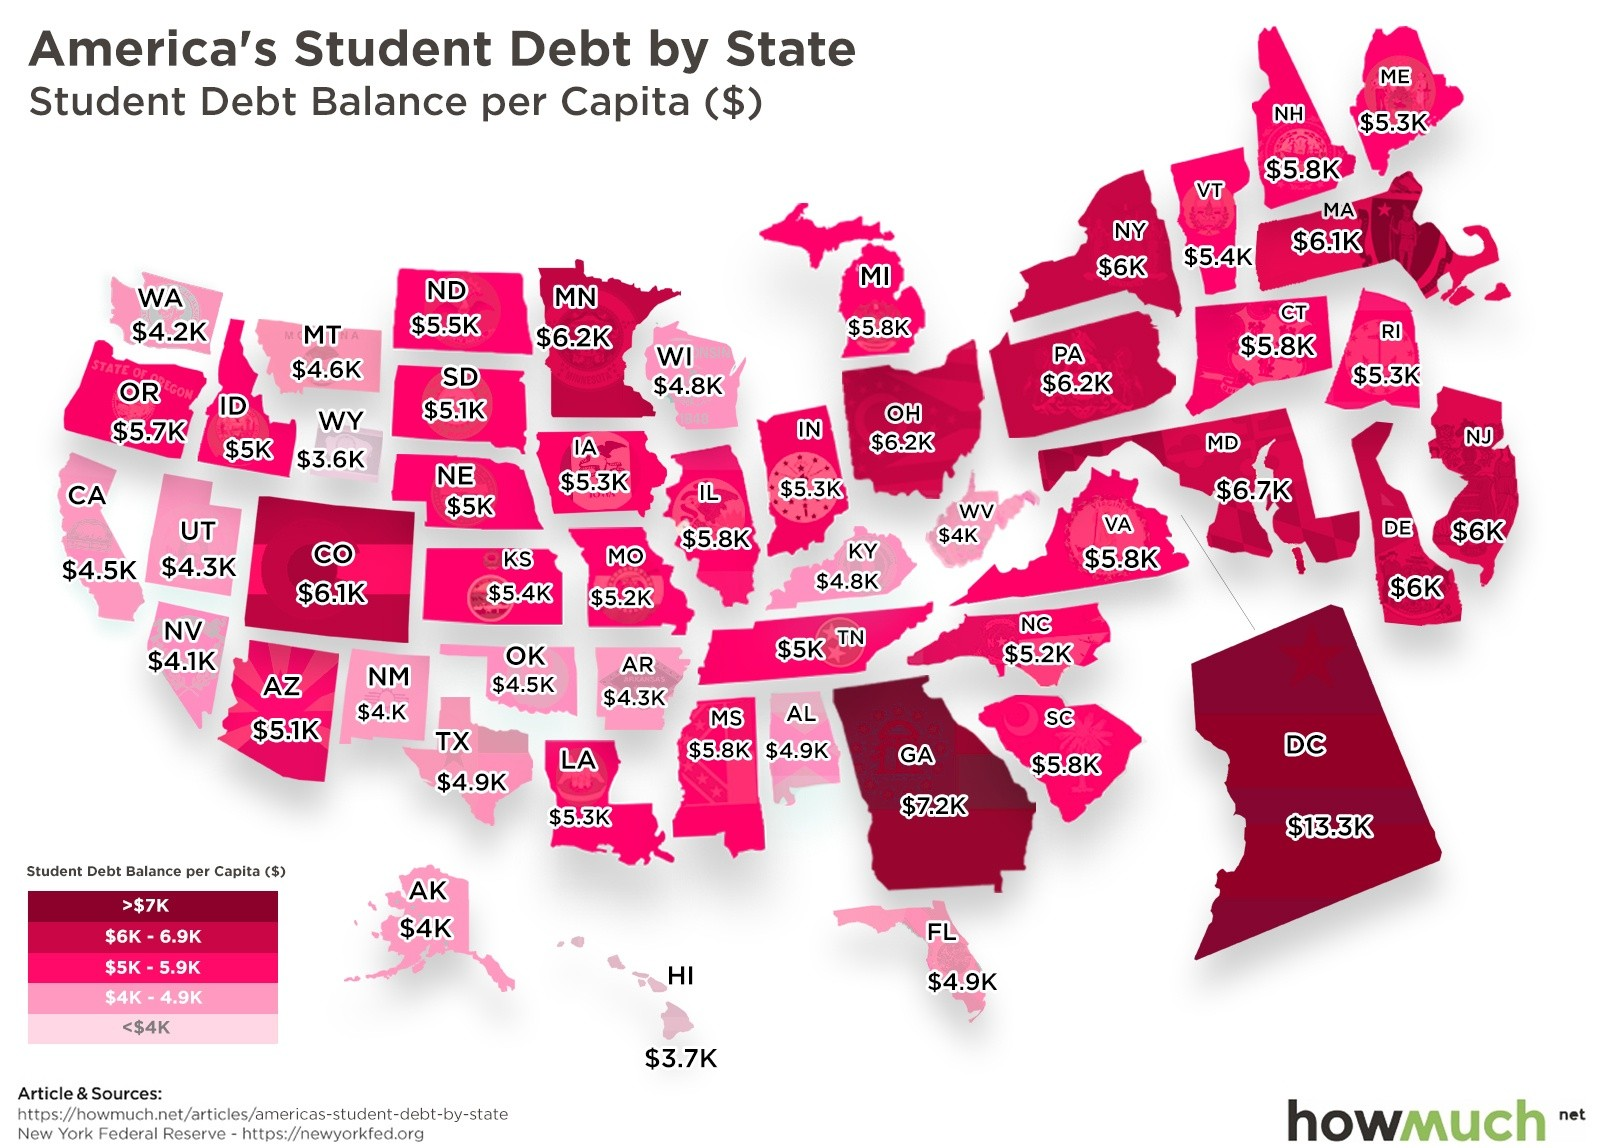 Student deby by state